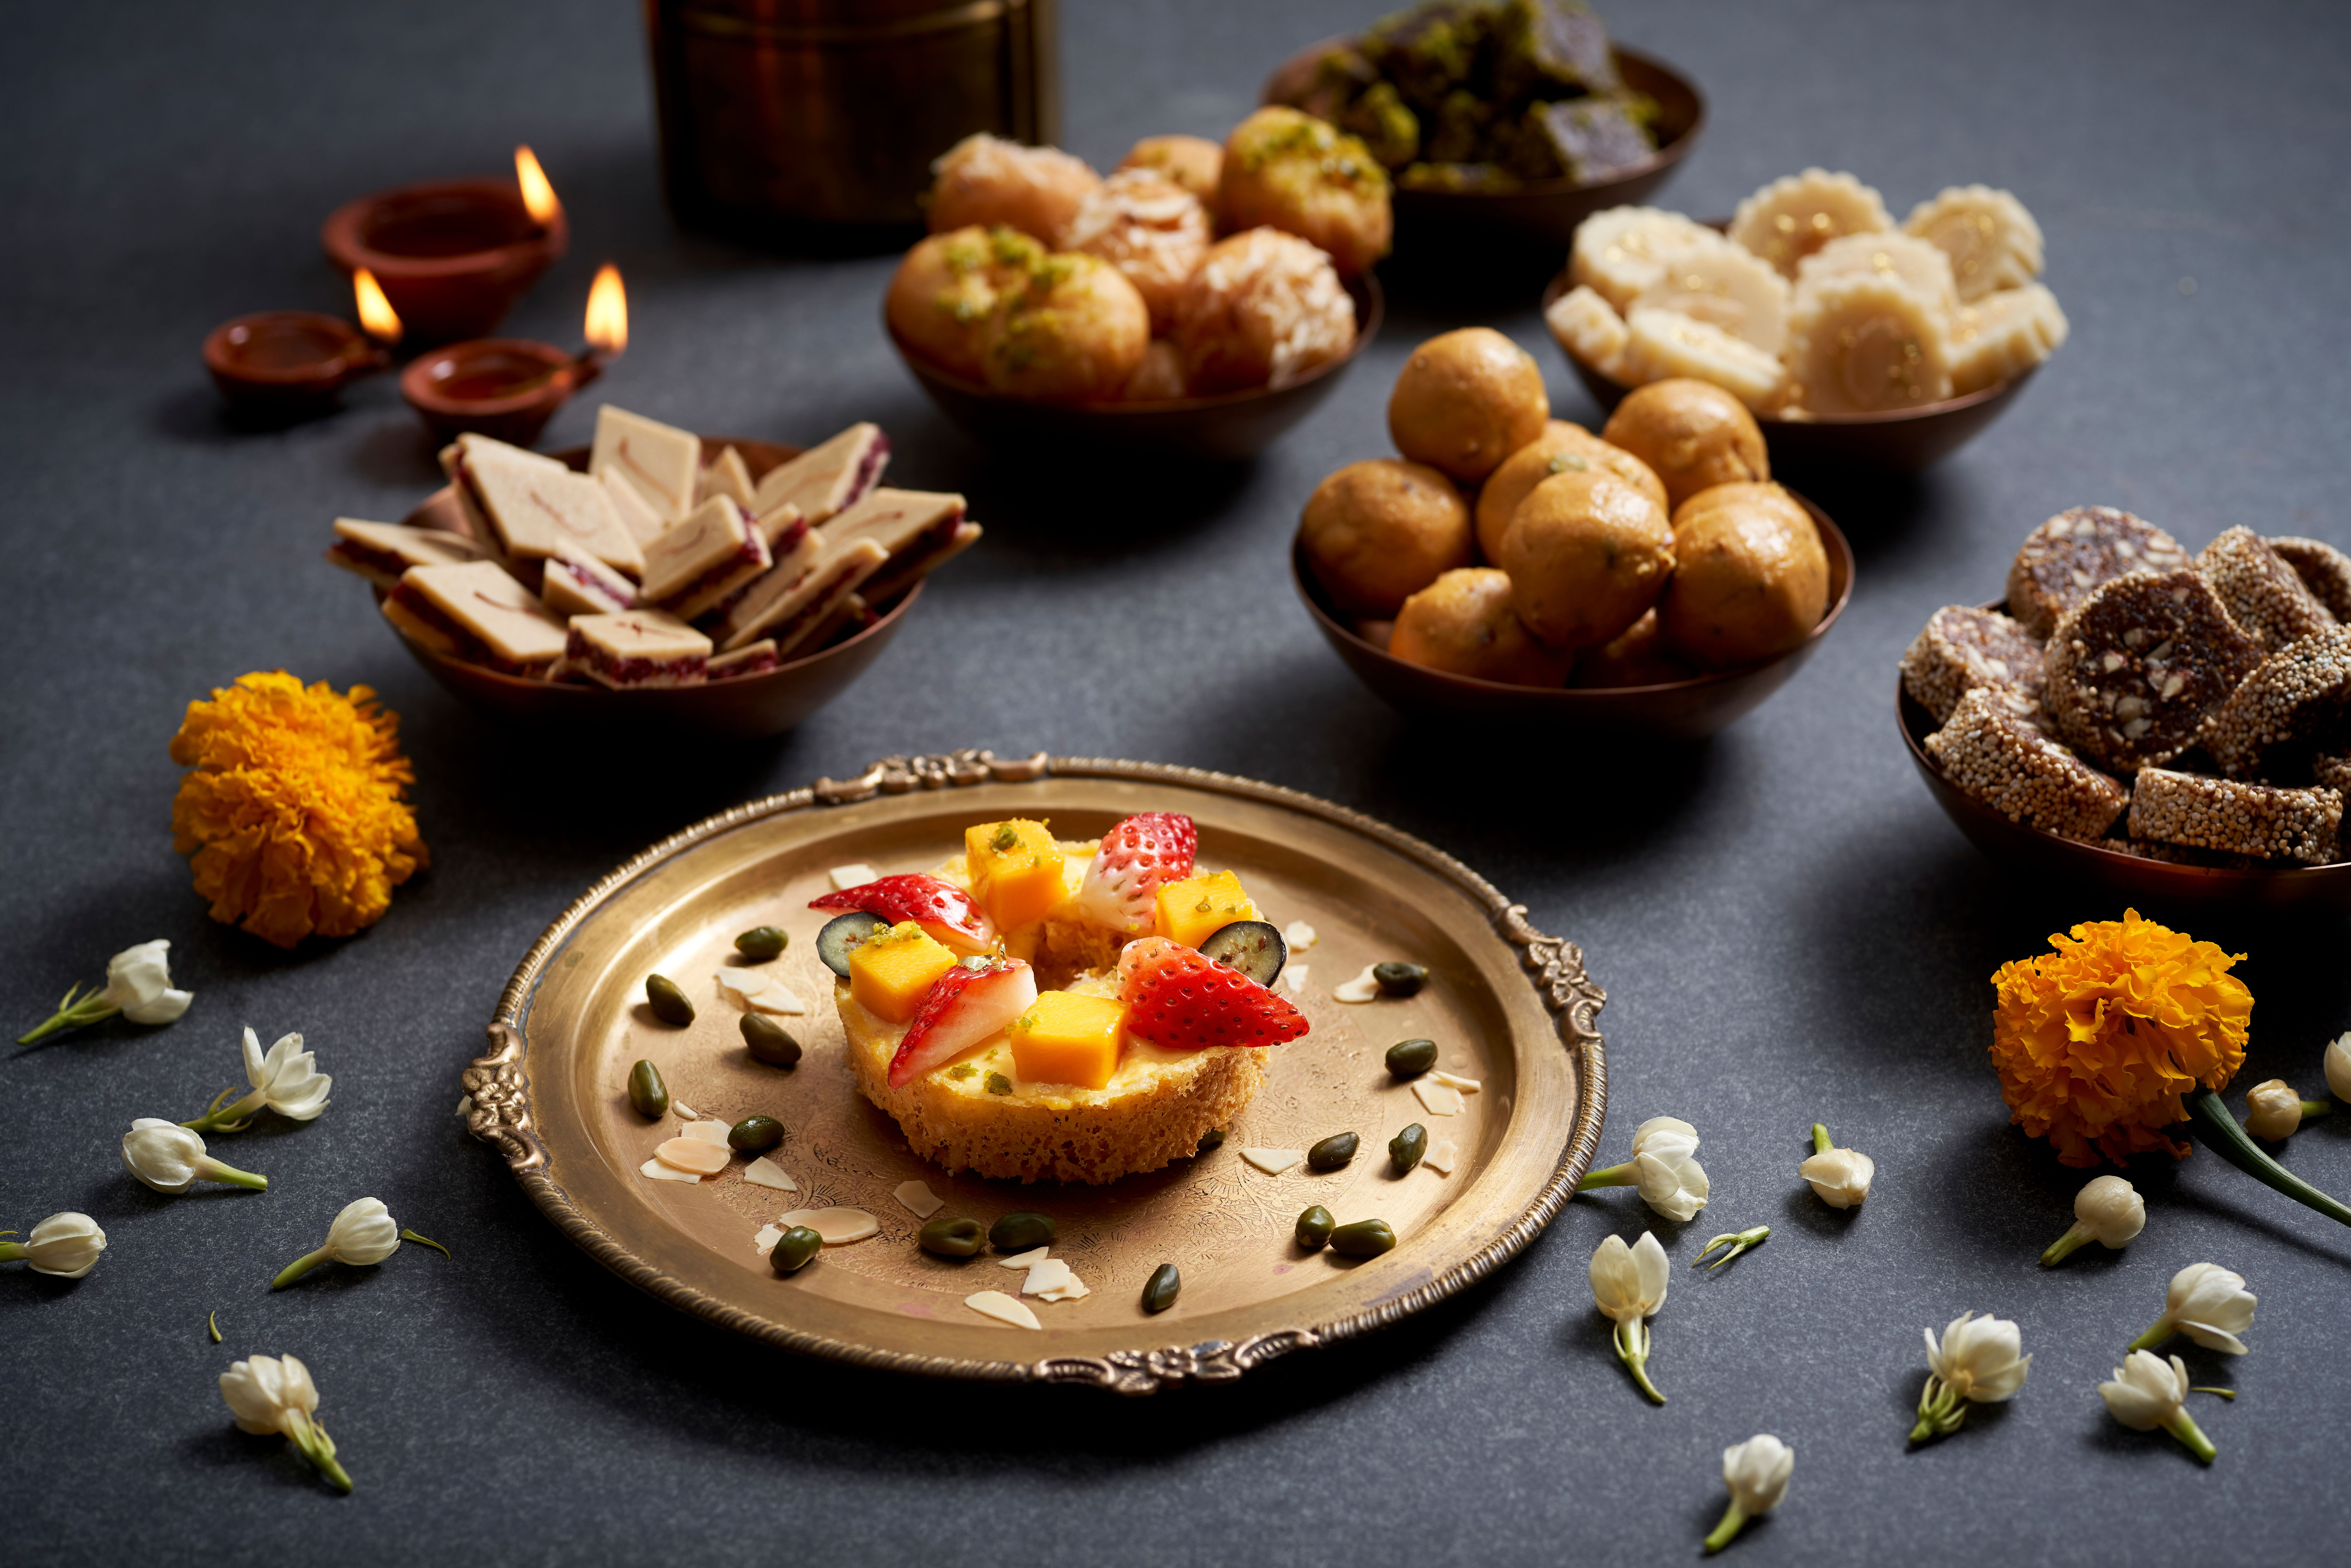 Handmade Mithai Diwali specialty sweets for takeaway, will also be available at the Tiffin Room for Diwali. Photo credit Raffles Hotel Singapore